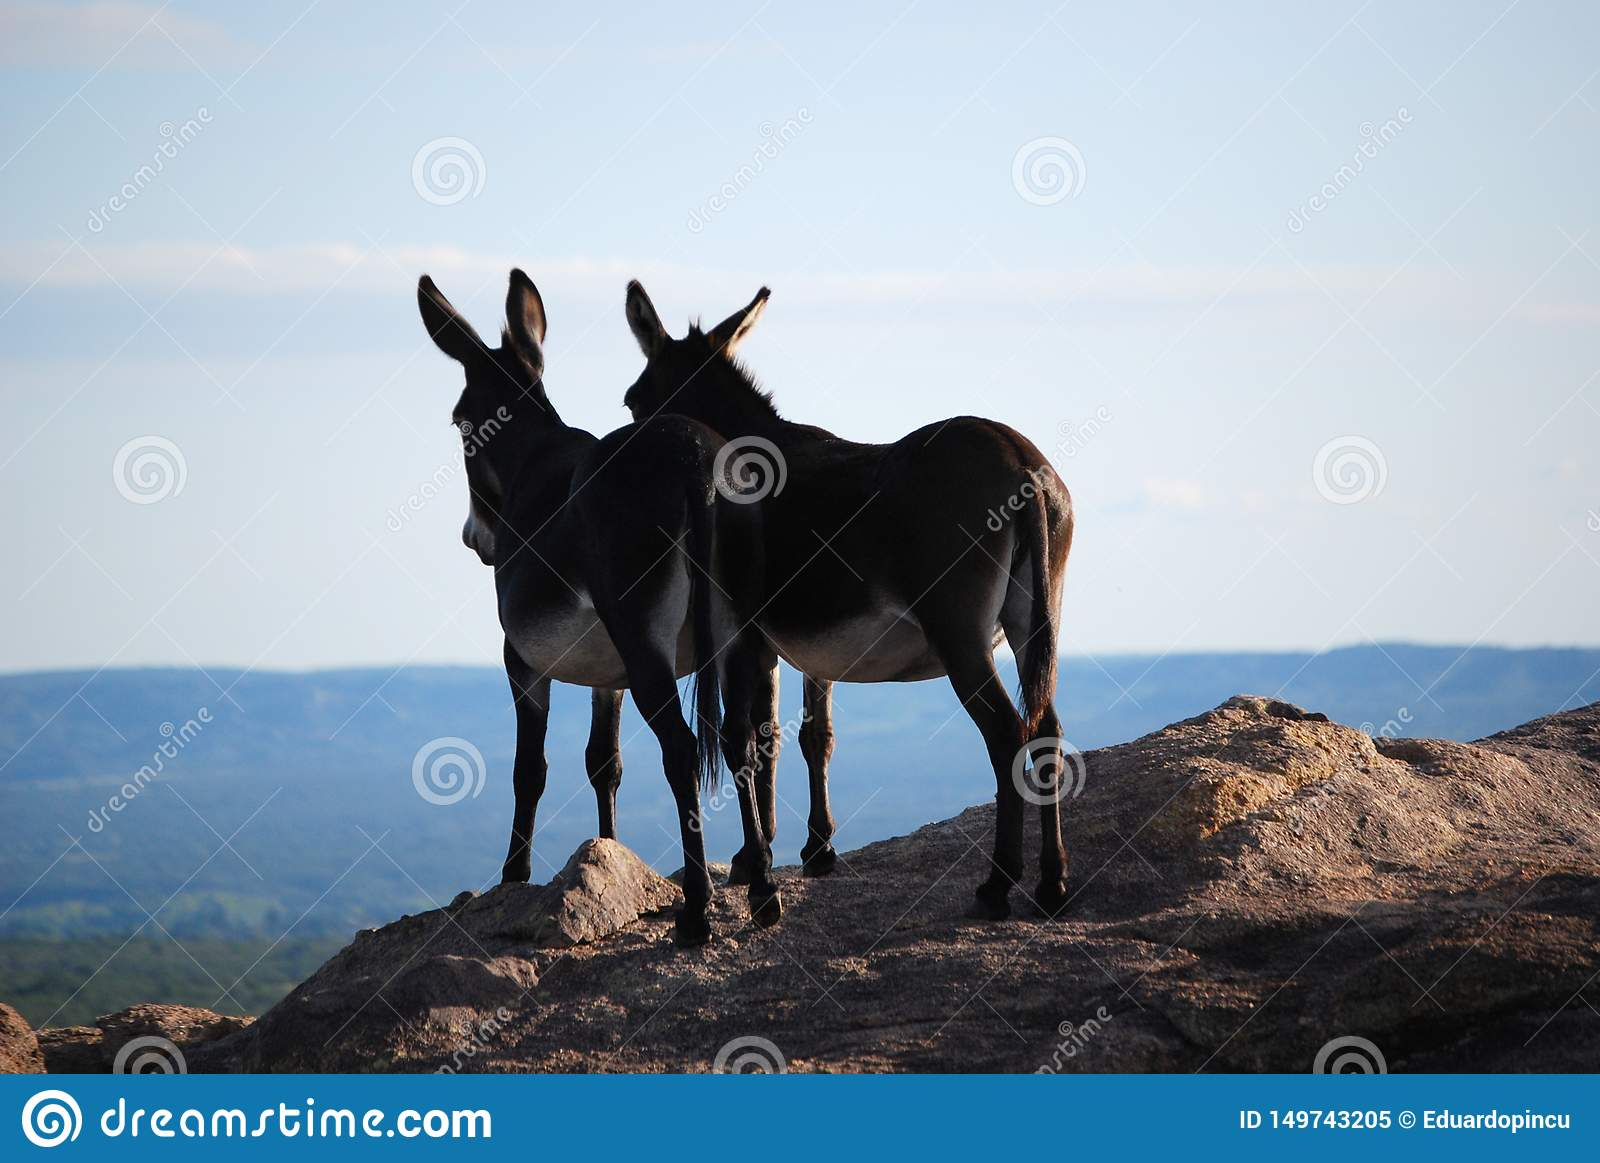 couple of donkeys in love in the mountains